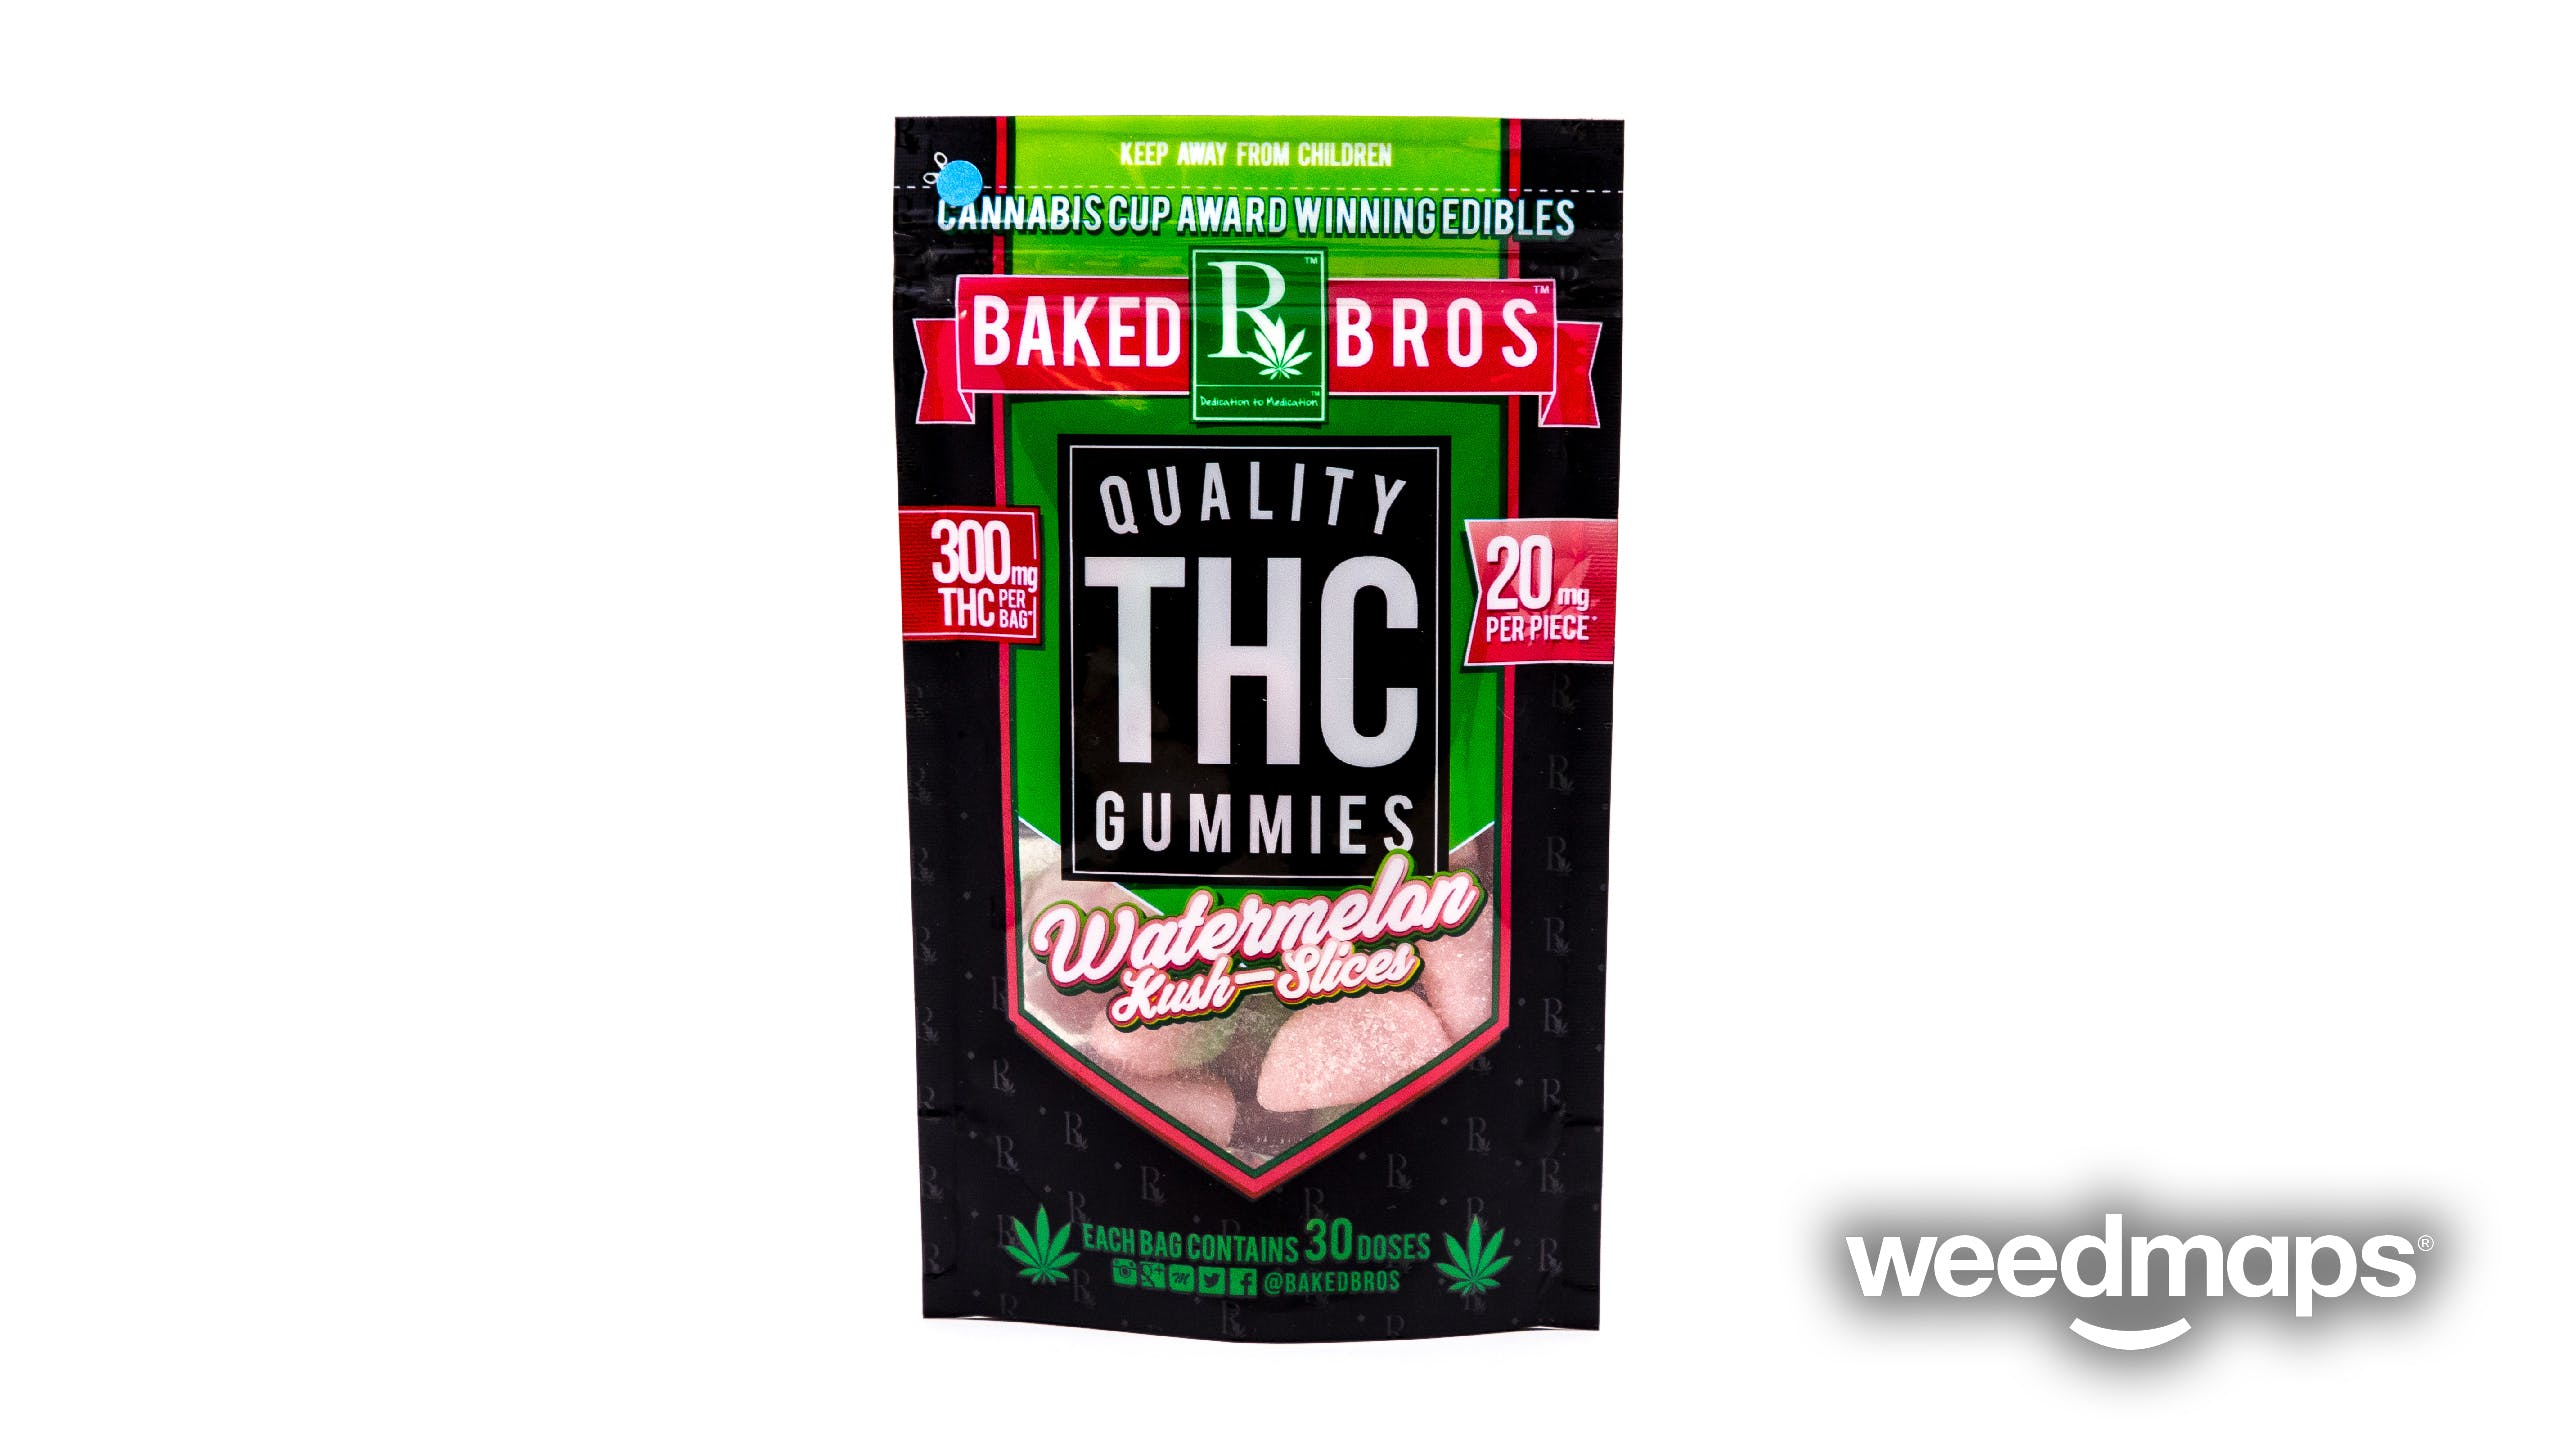 edible-baked-bros-300mg-gummies-assorted-flavors